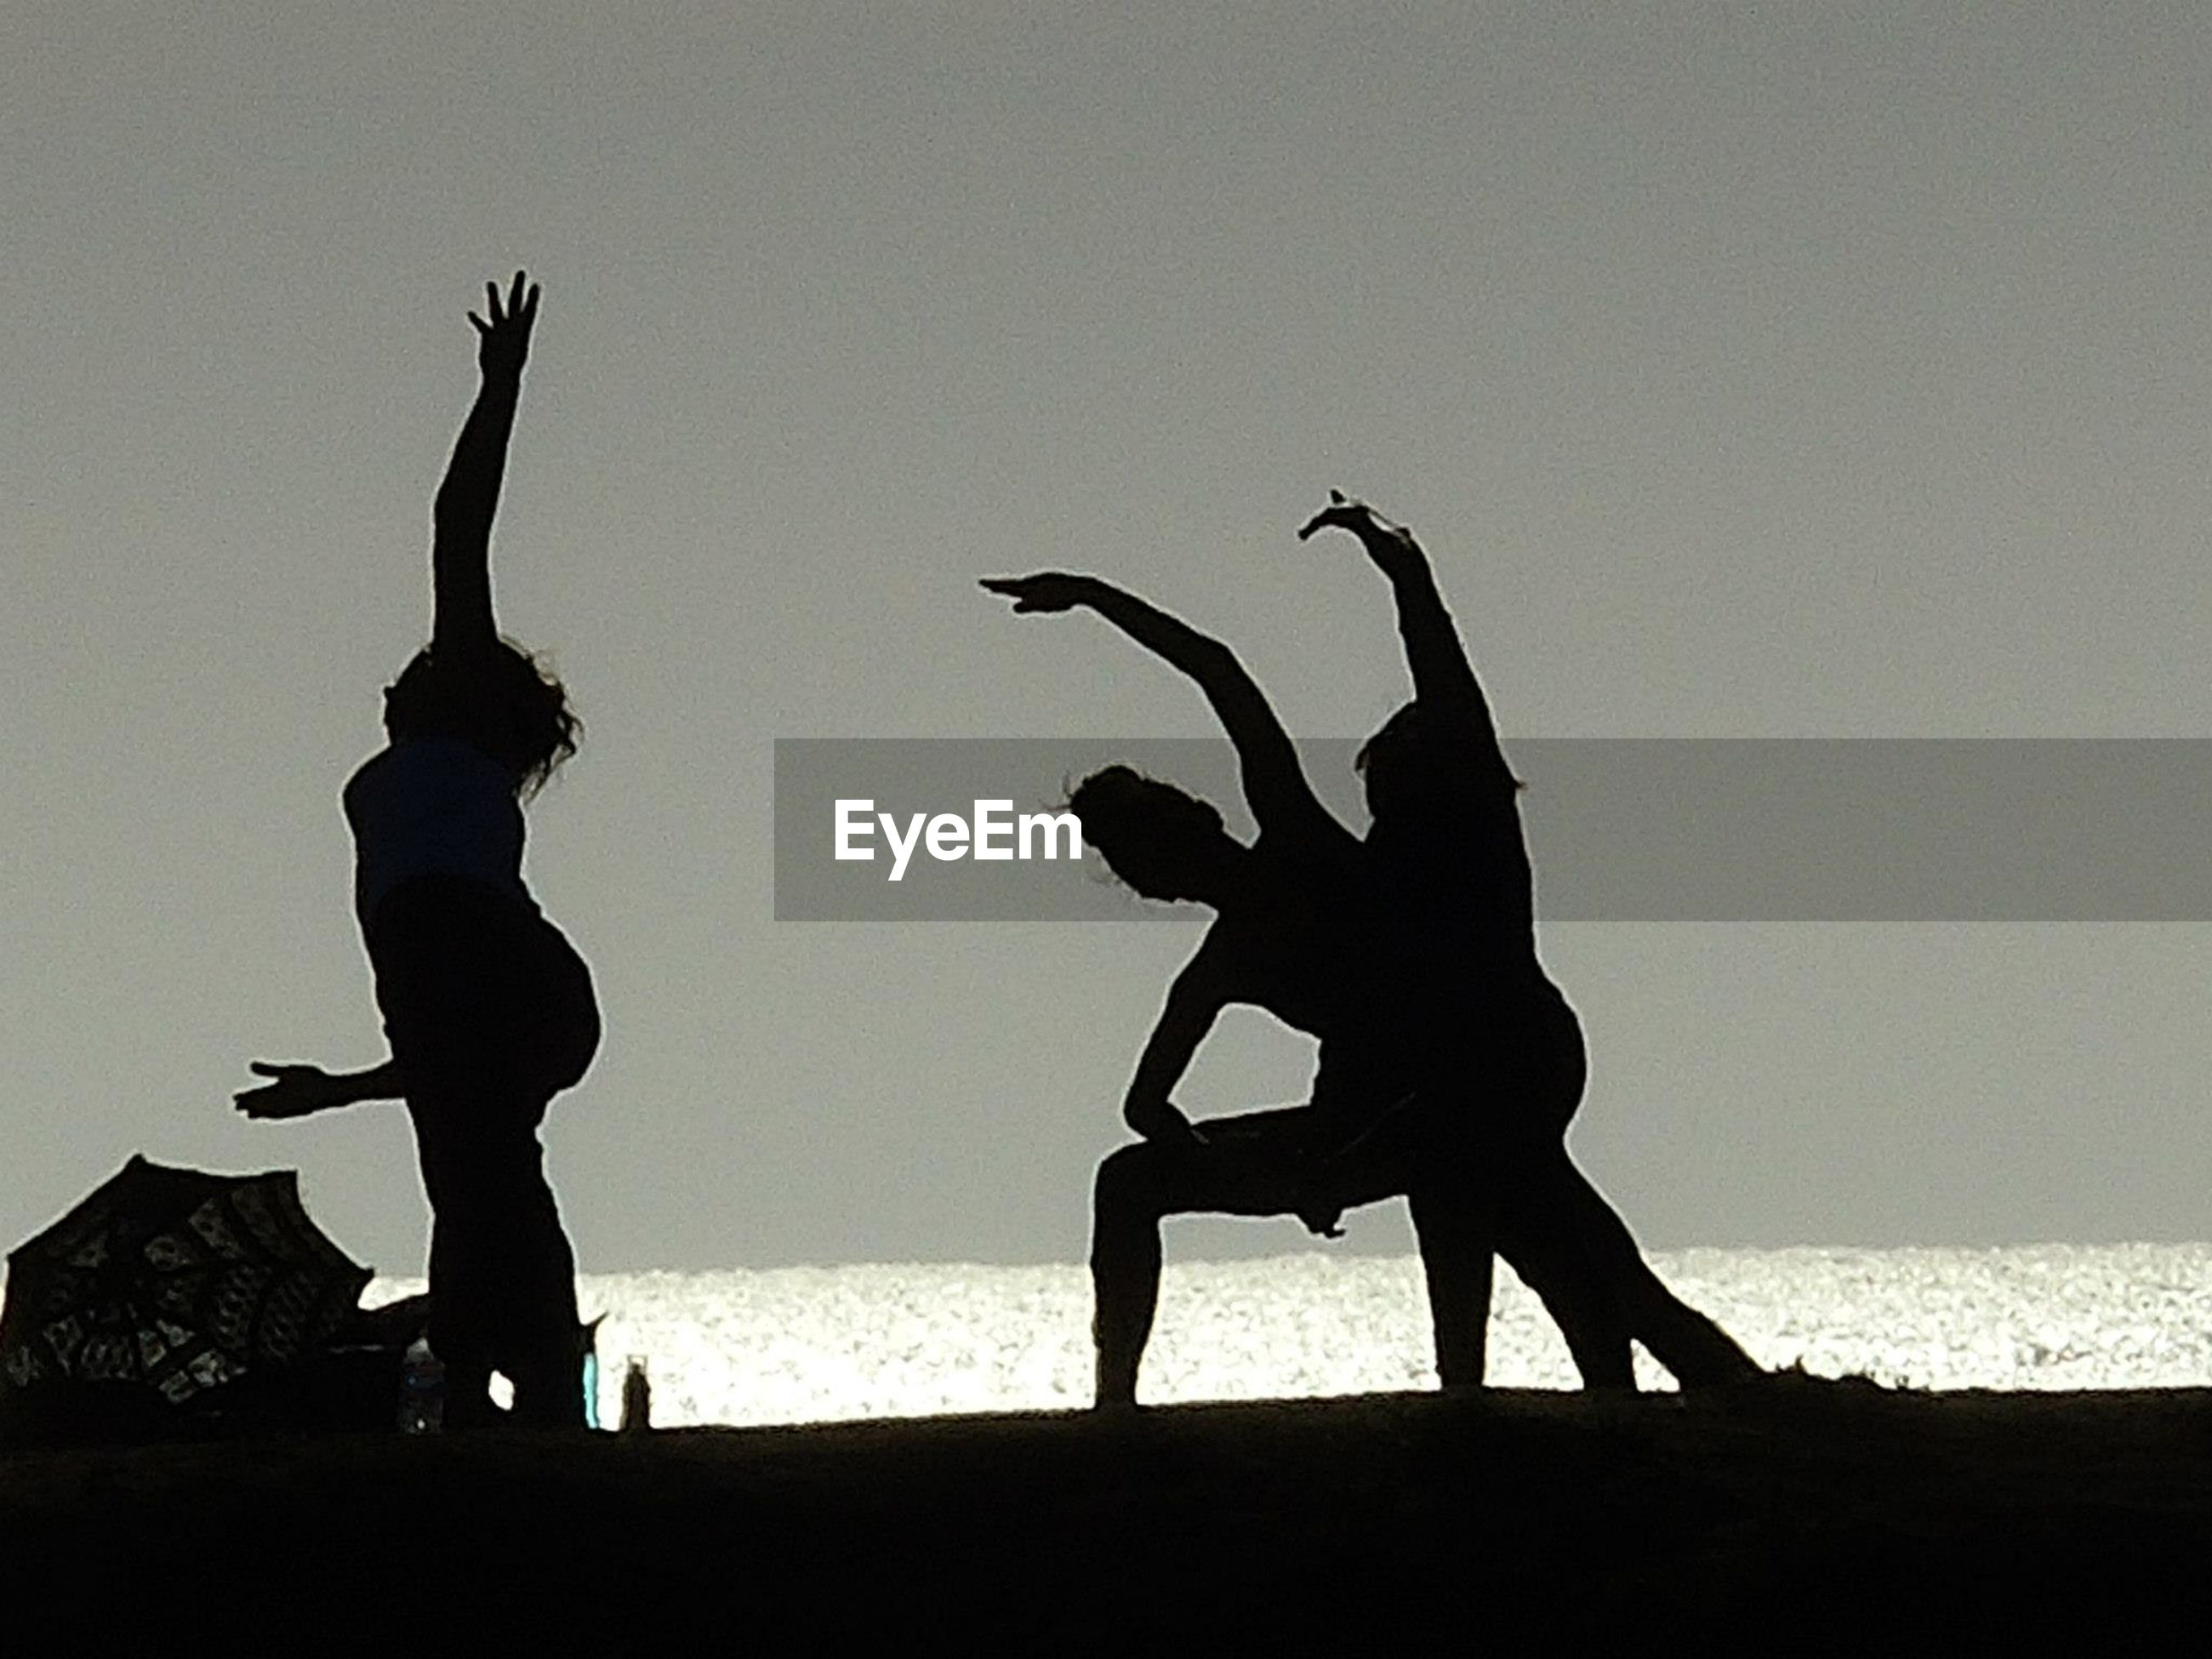 Silhouette women exercising on beach against clear sky